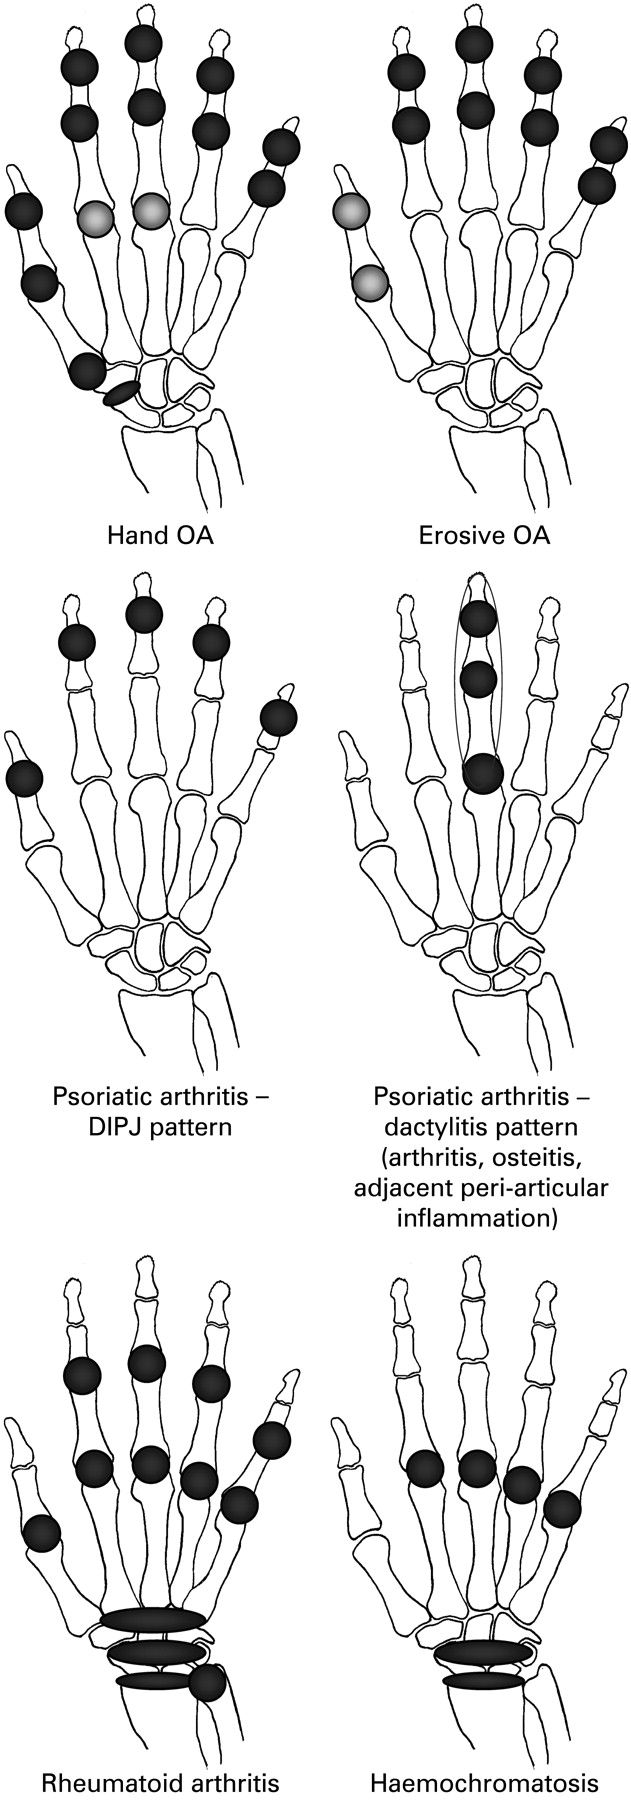 Hand involvement in different types of arthritis. Repinned by PT Solutions follow us at https://www.pinterest.com/myptsolutions/